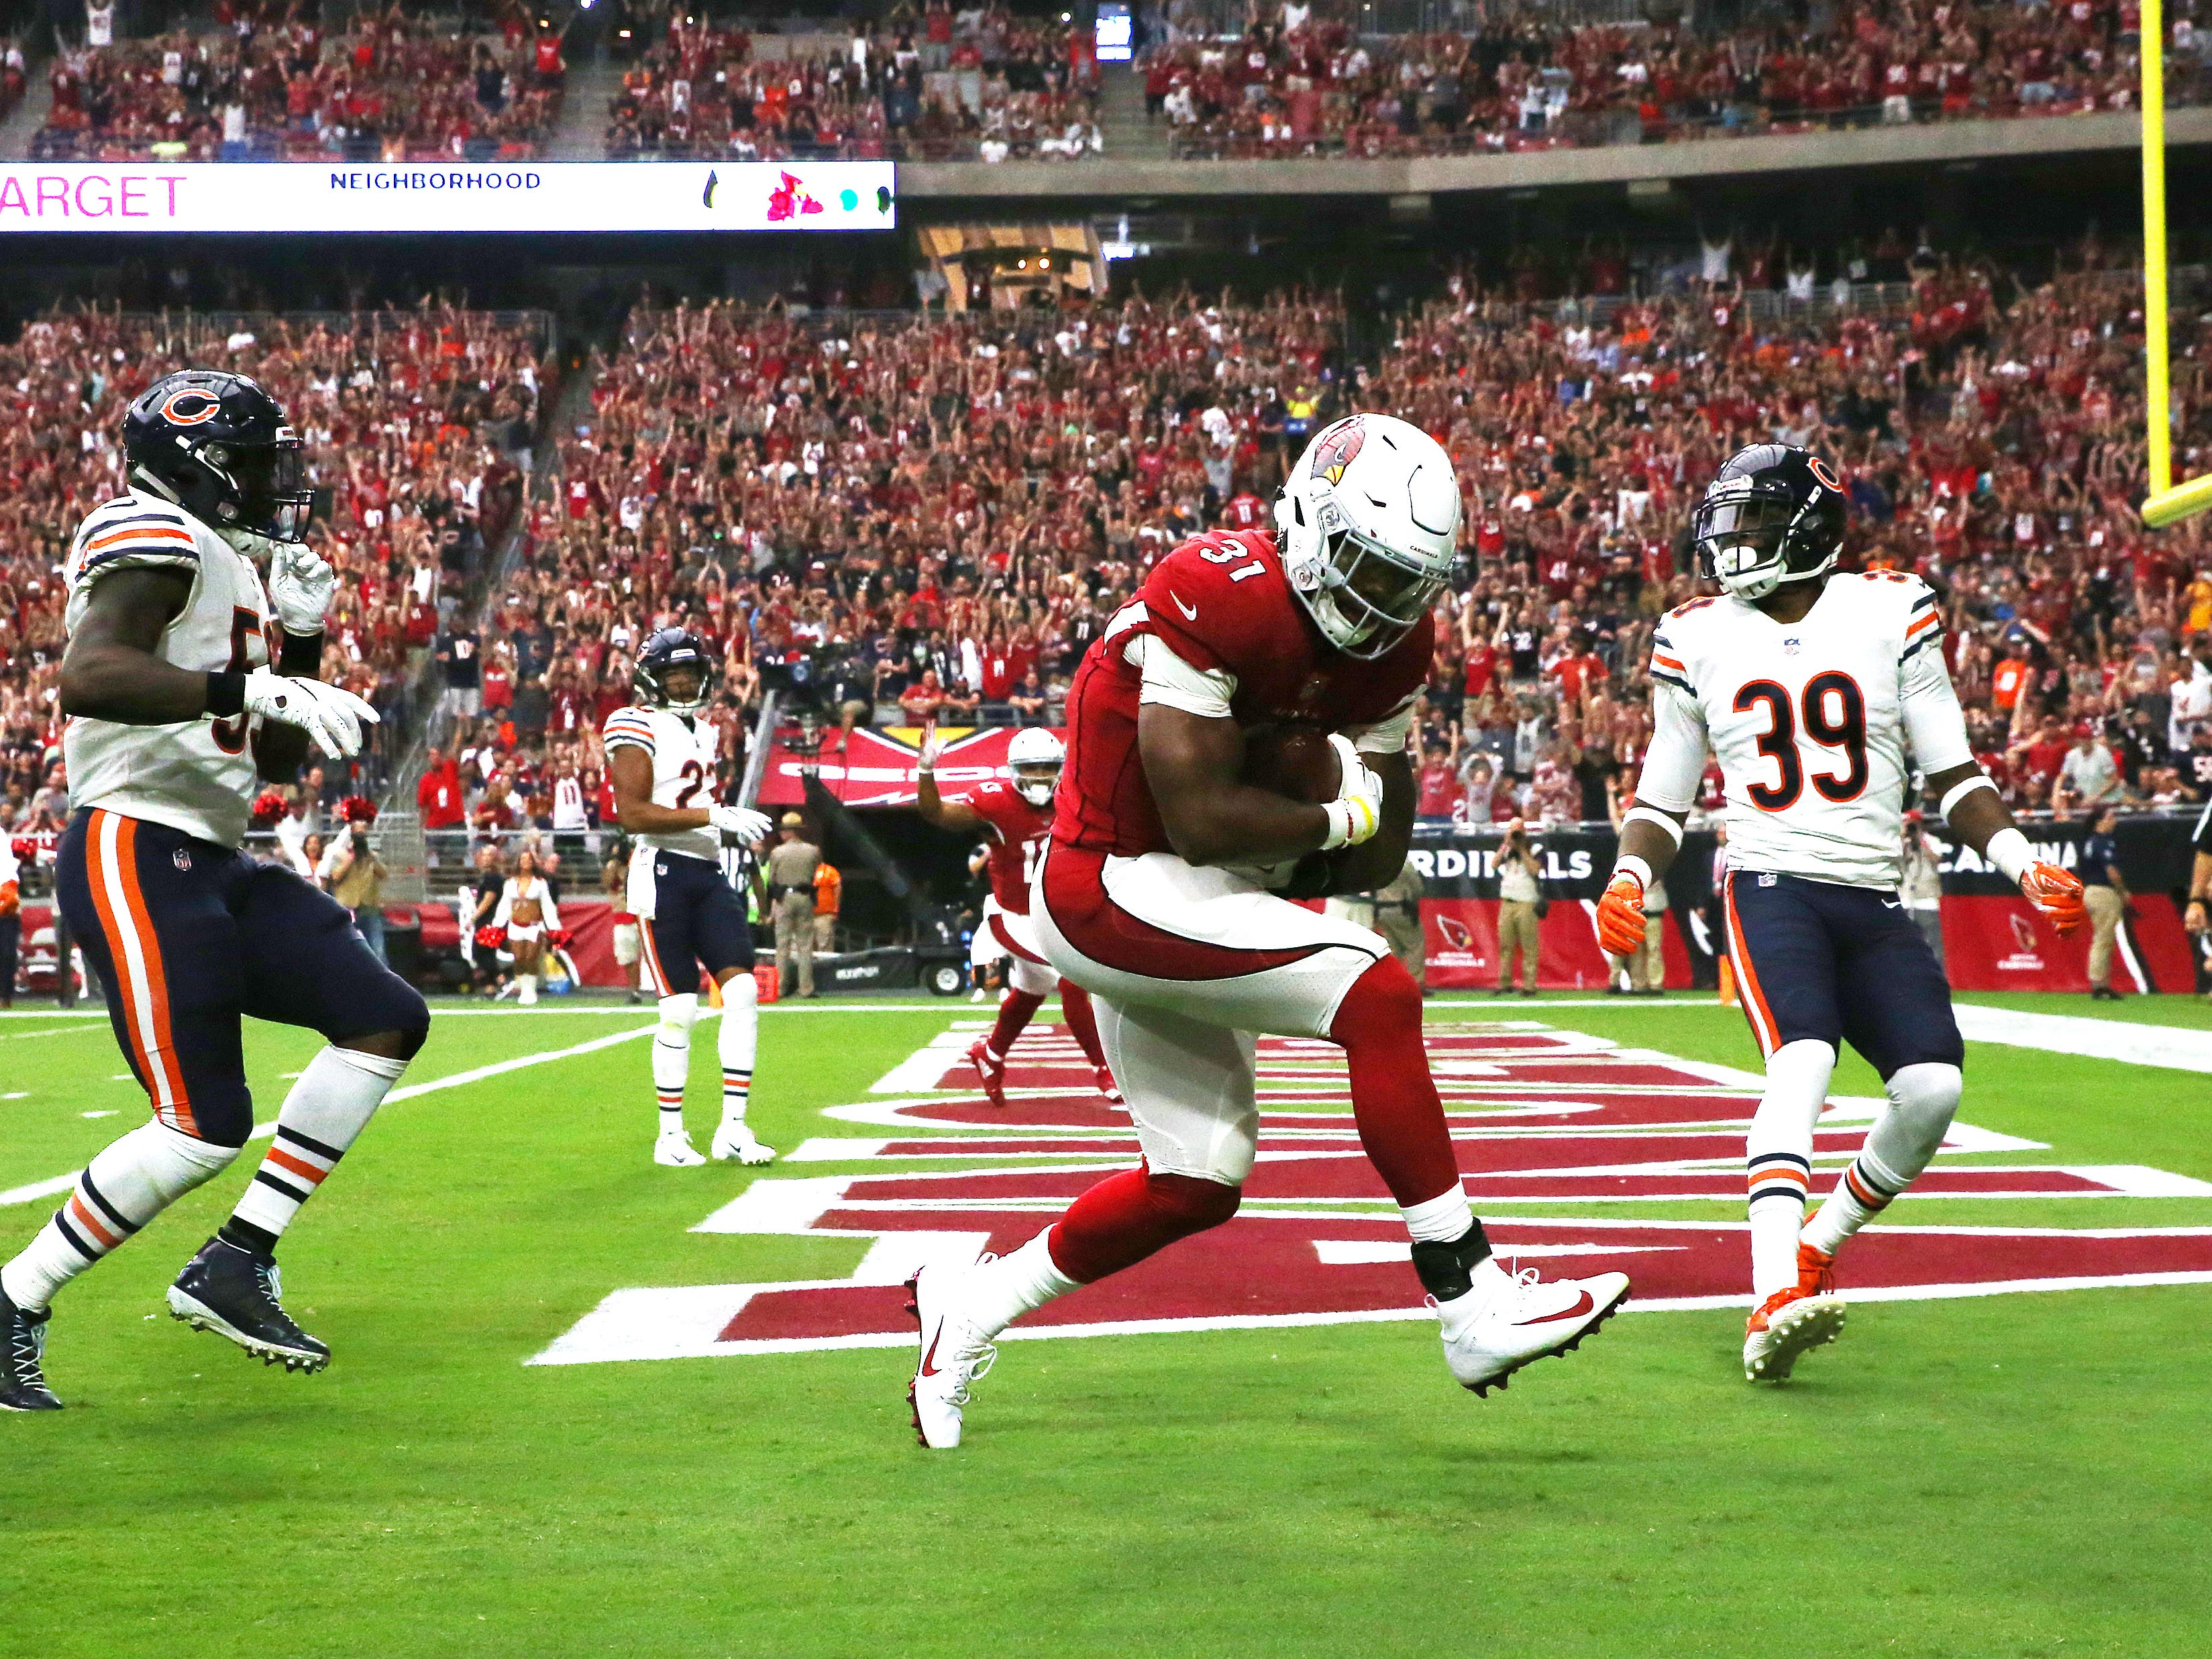 Arizona Cardinals David Johnson scores a touchdown against the Chicago Bears in the first half at State Farm Stadium in Glendale, Ariz.